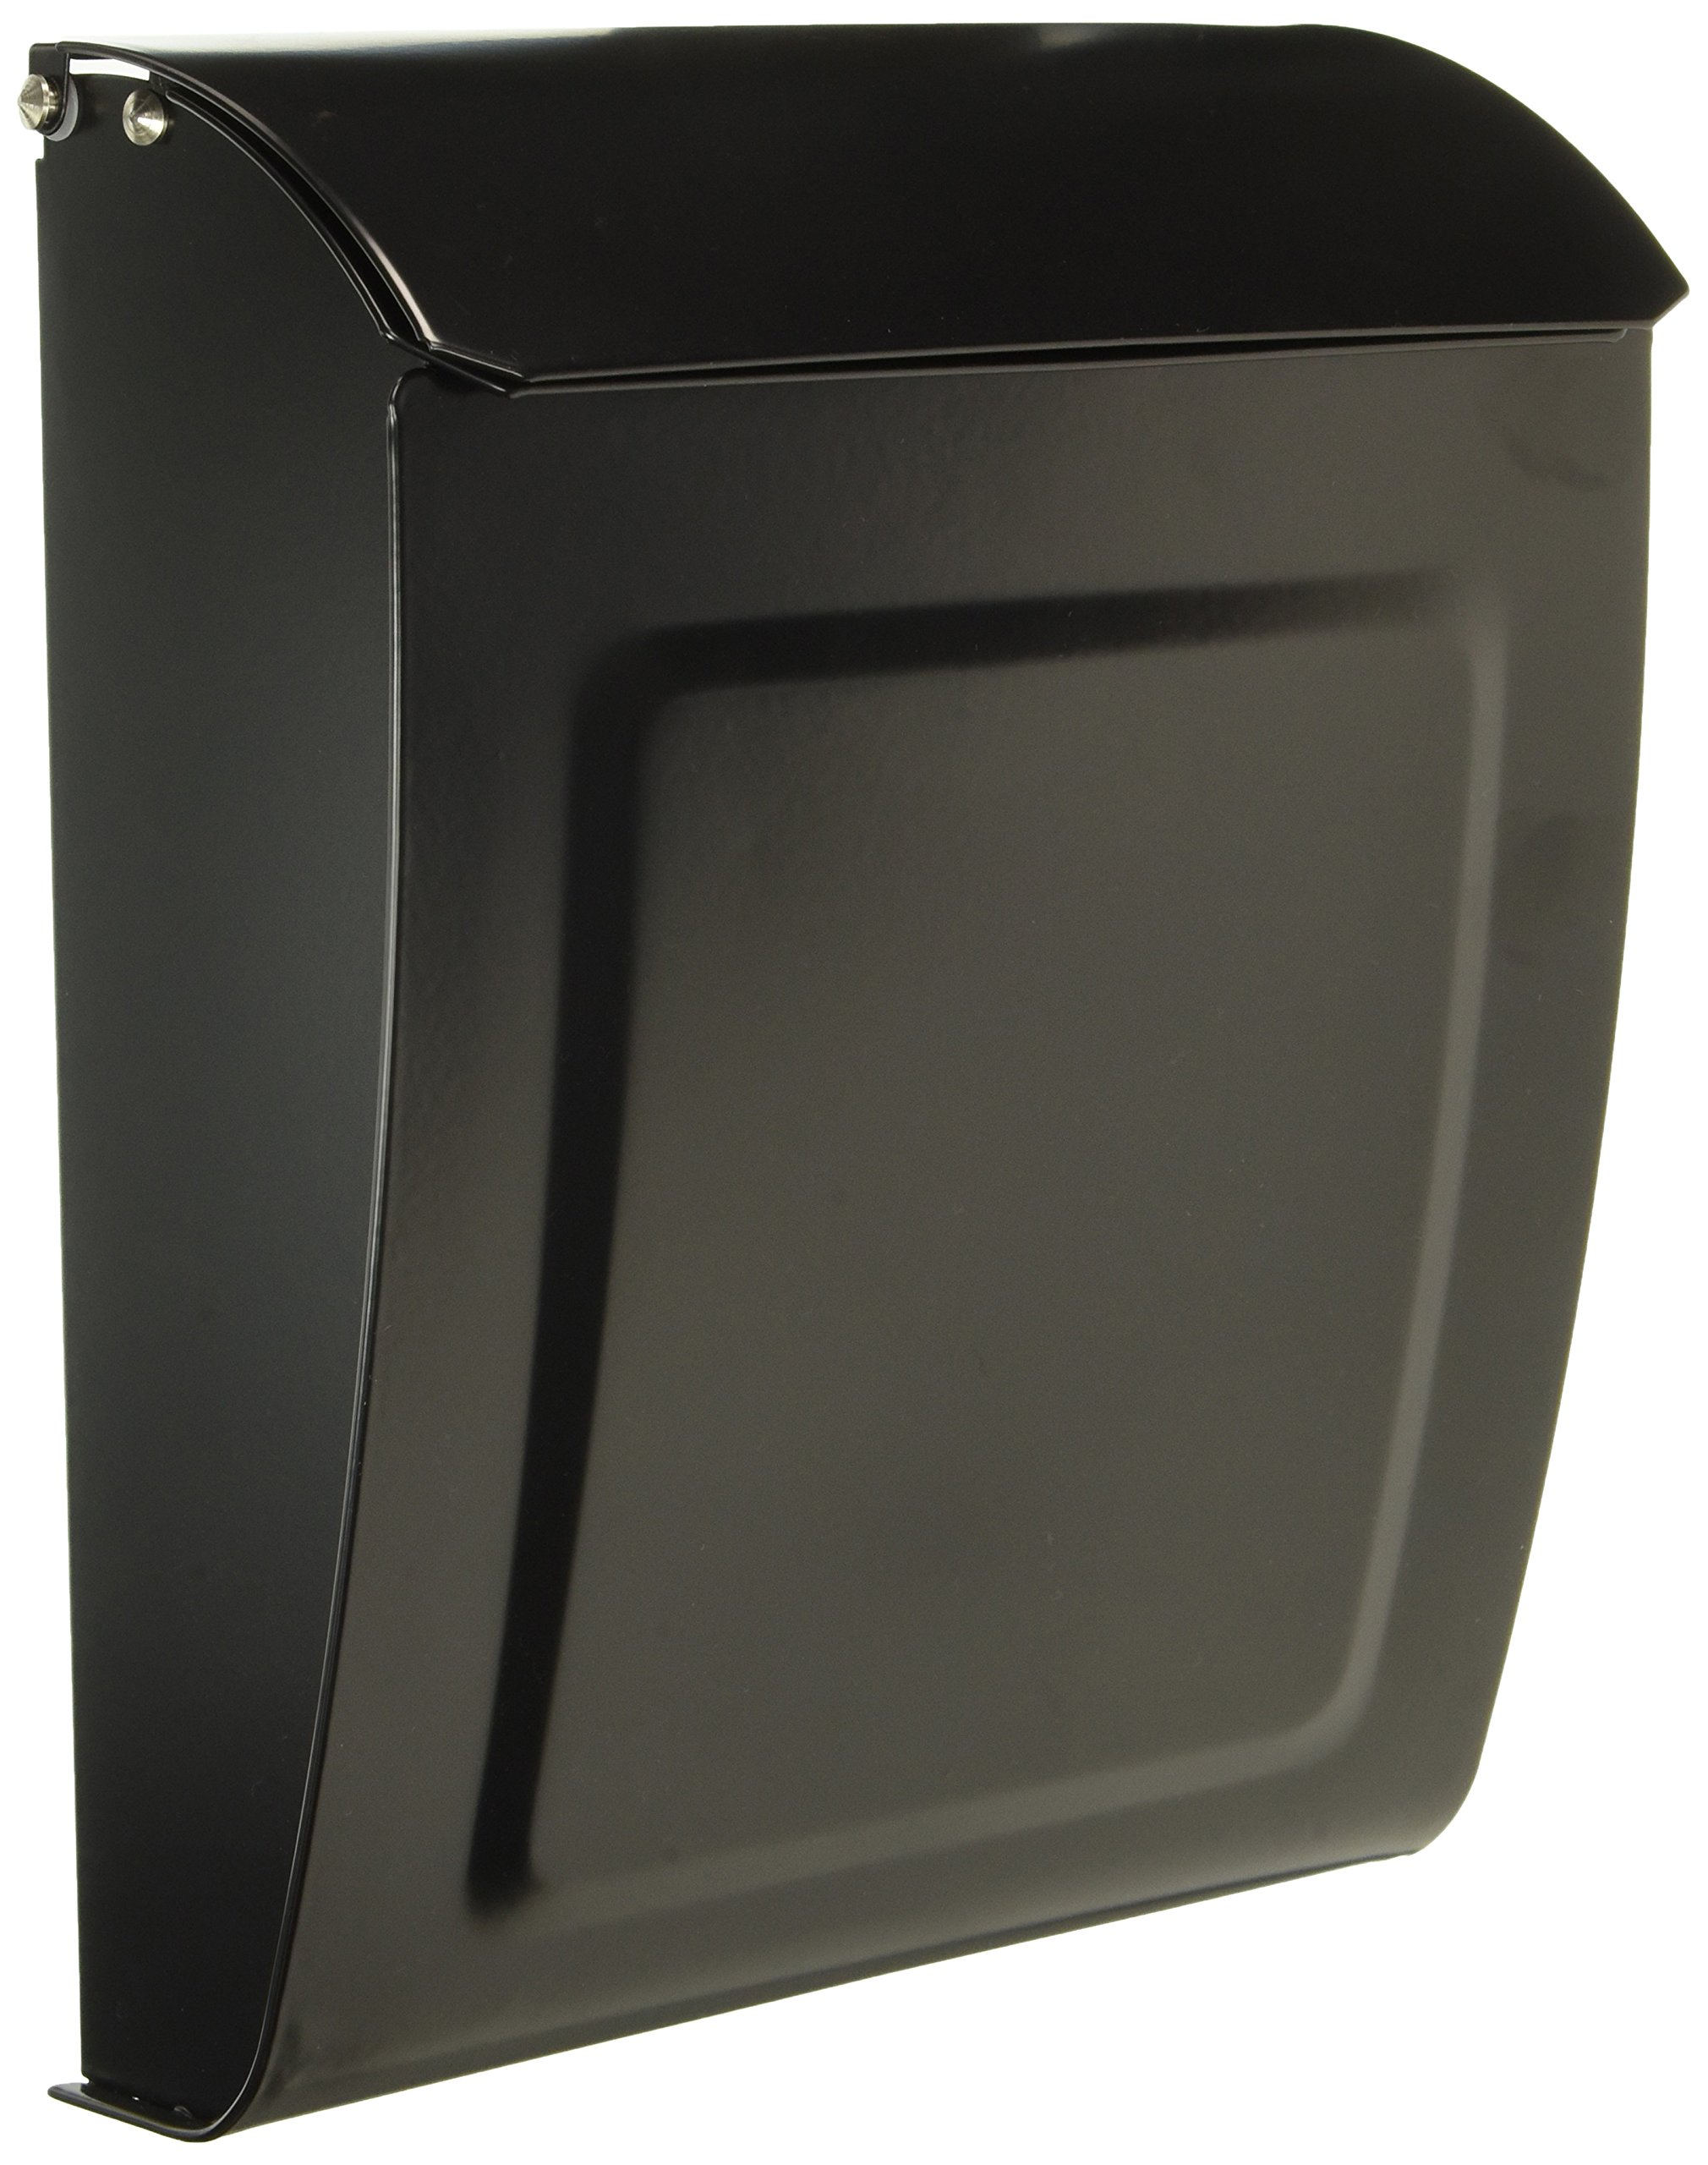 Architectural Mailboxes 2594B Aspen Locking Wall Mount Mailbox Black Aspen Locking Wall Mount Mailbox, Small